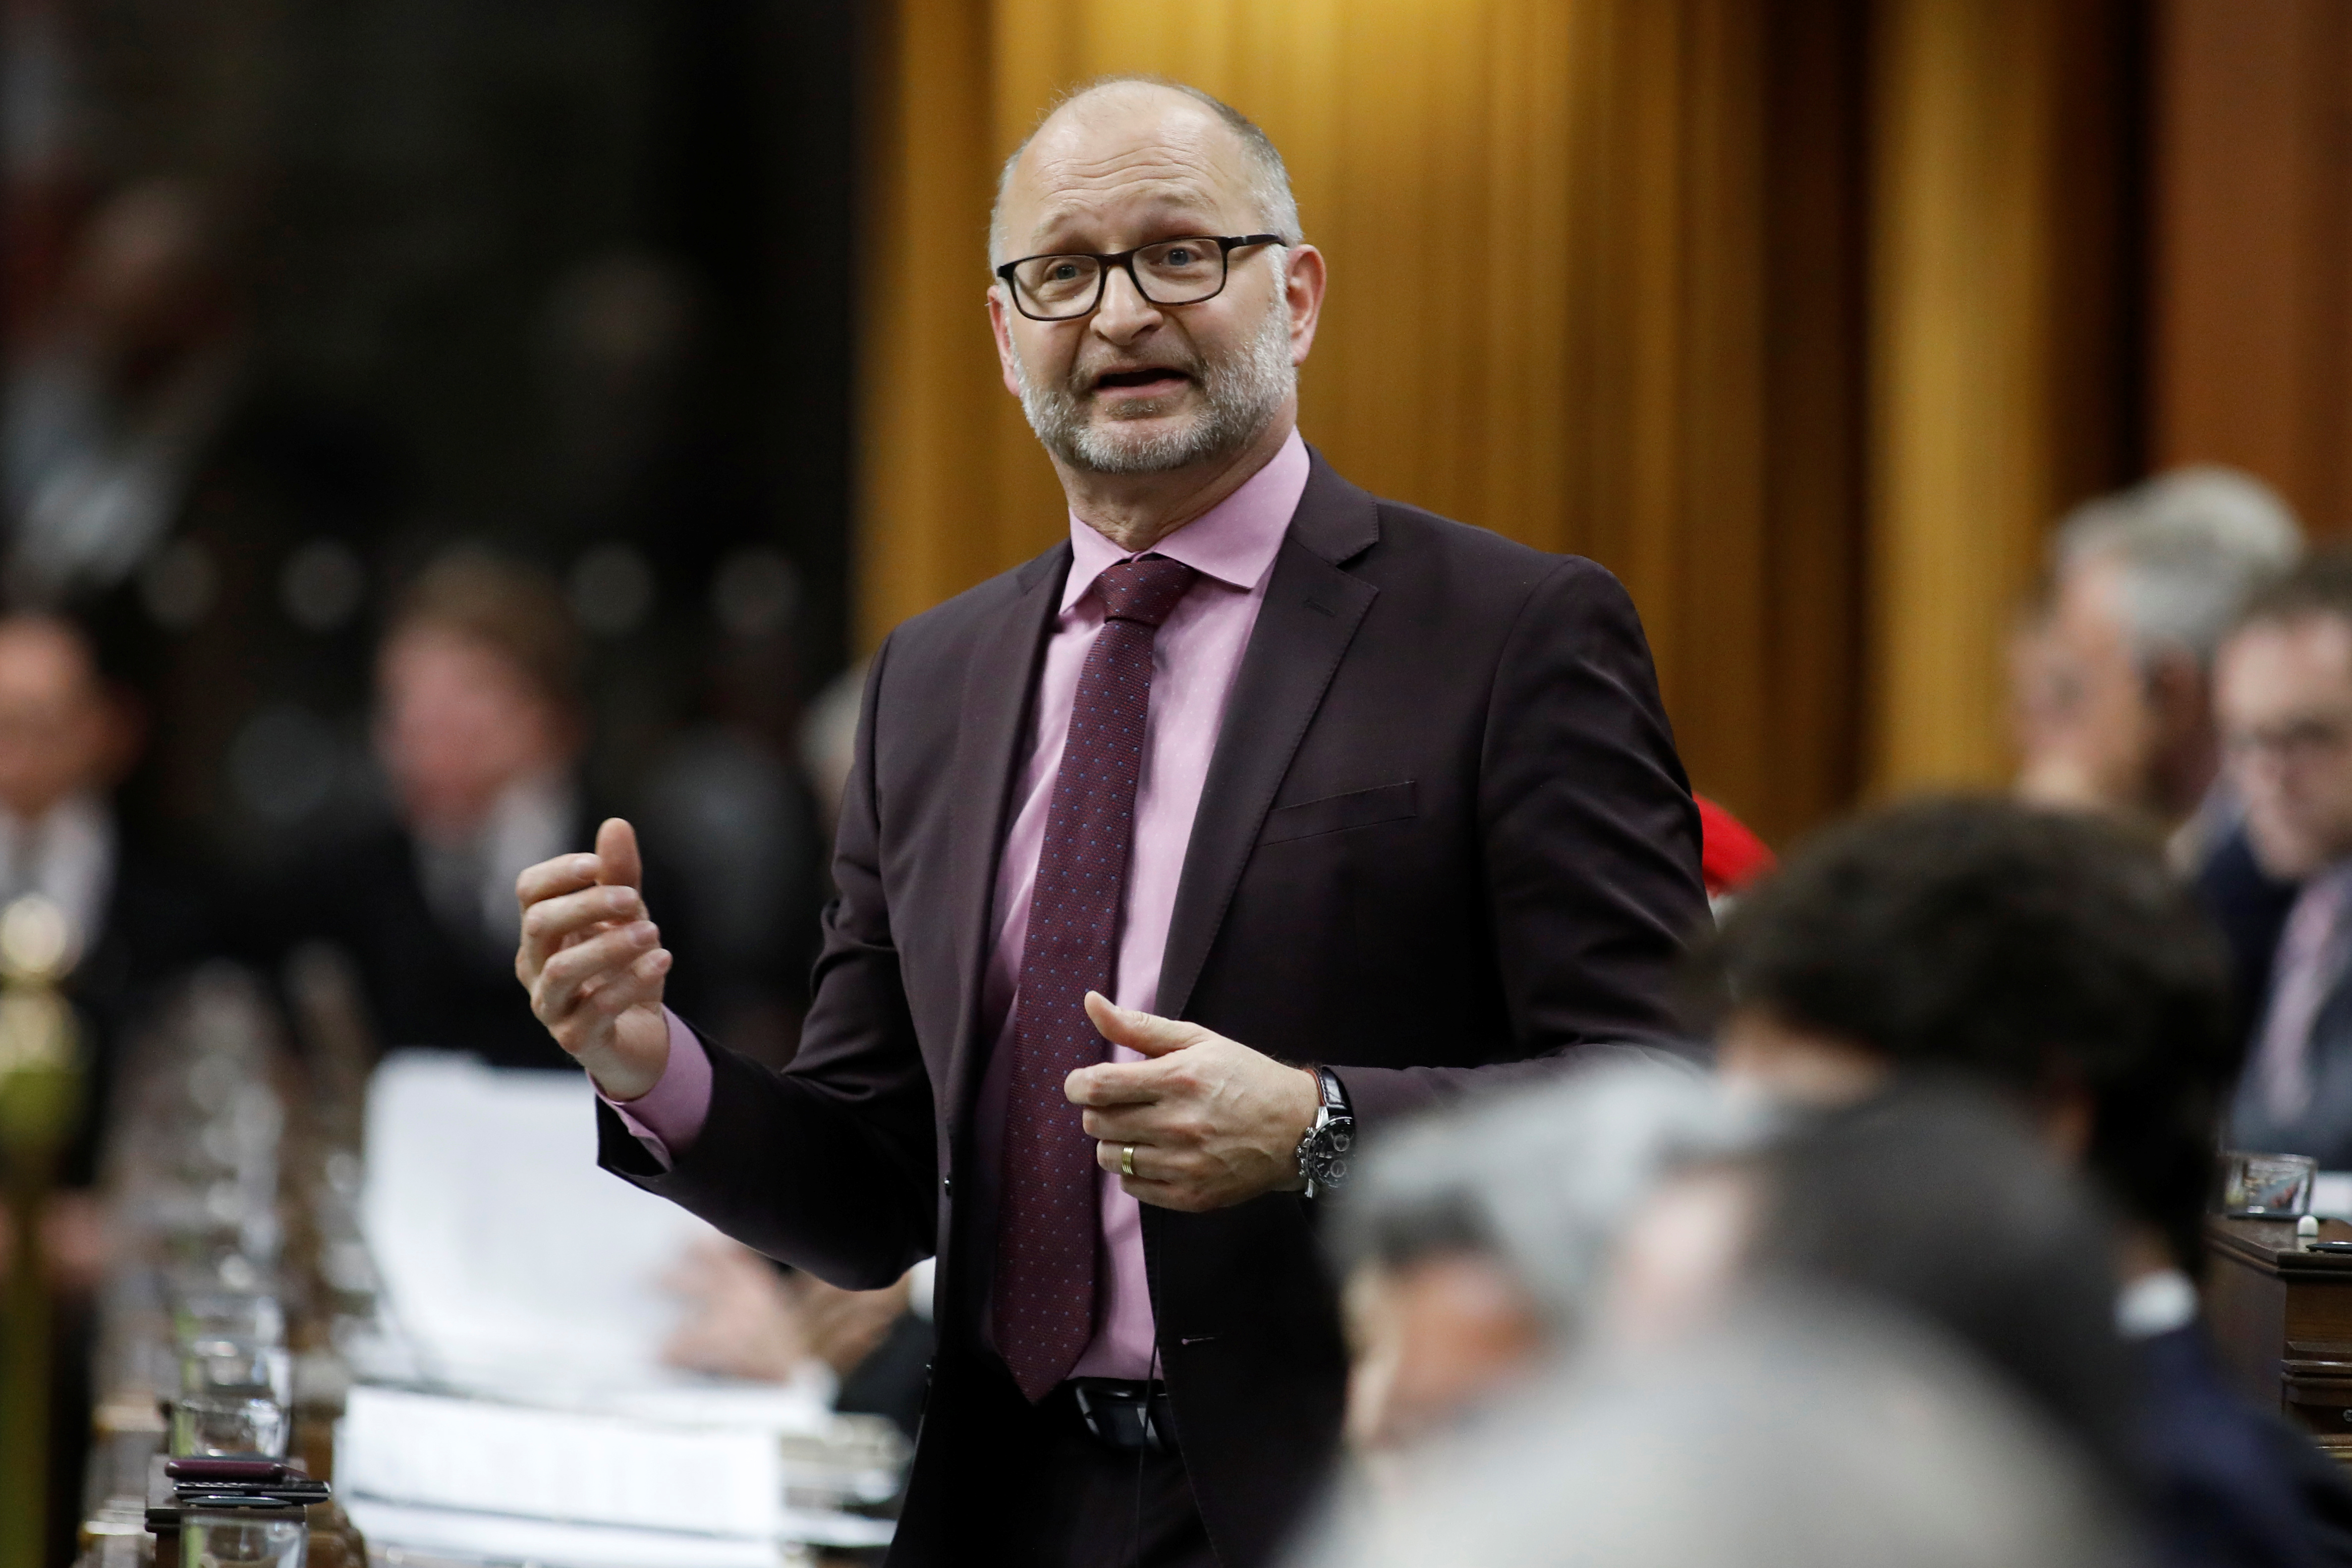 Canada's Minister of Justice and Attorney General of Canada David Lametti speaks during Question Period in the House of Commons on Parliament Hill in Ottawa, Ontario, Canada January 27, 2020. REUTERS/Blair Gable